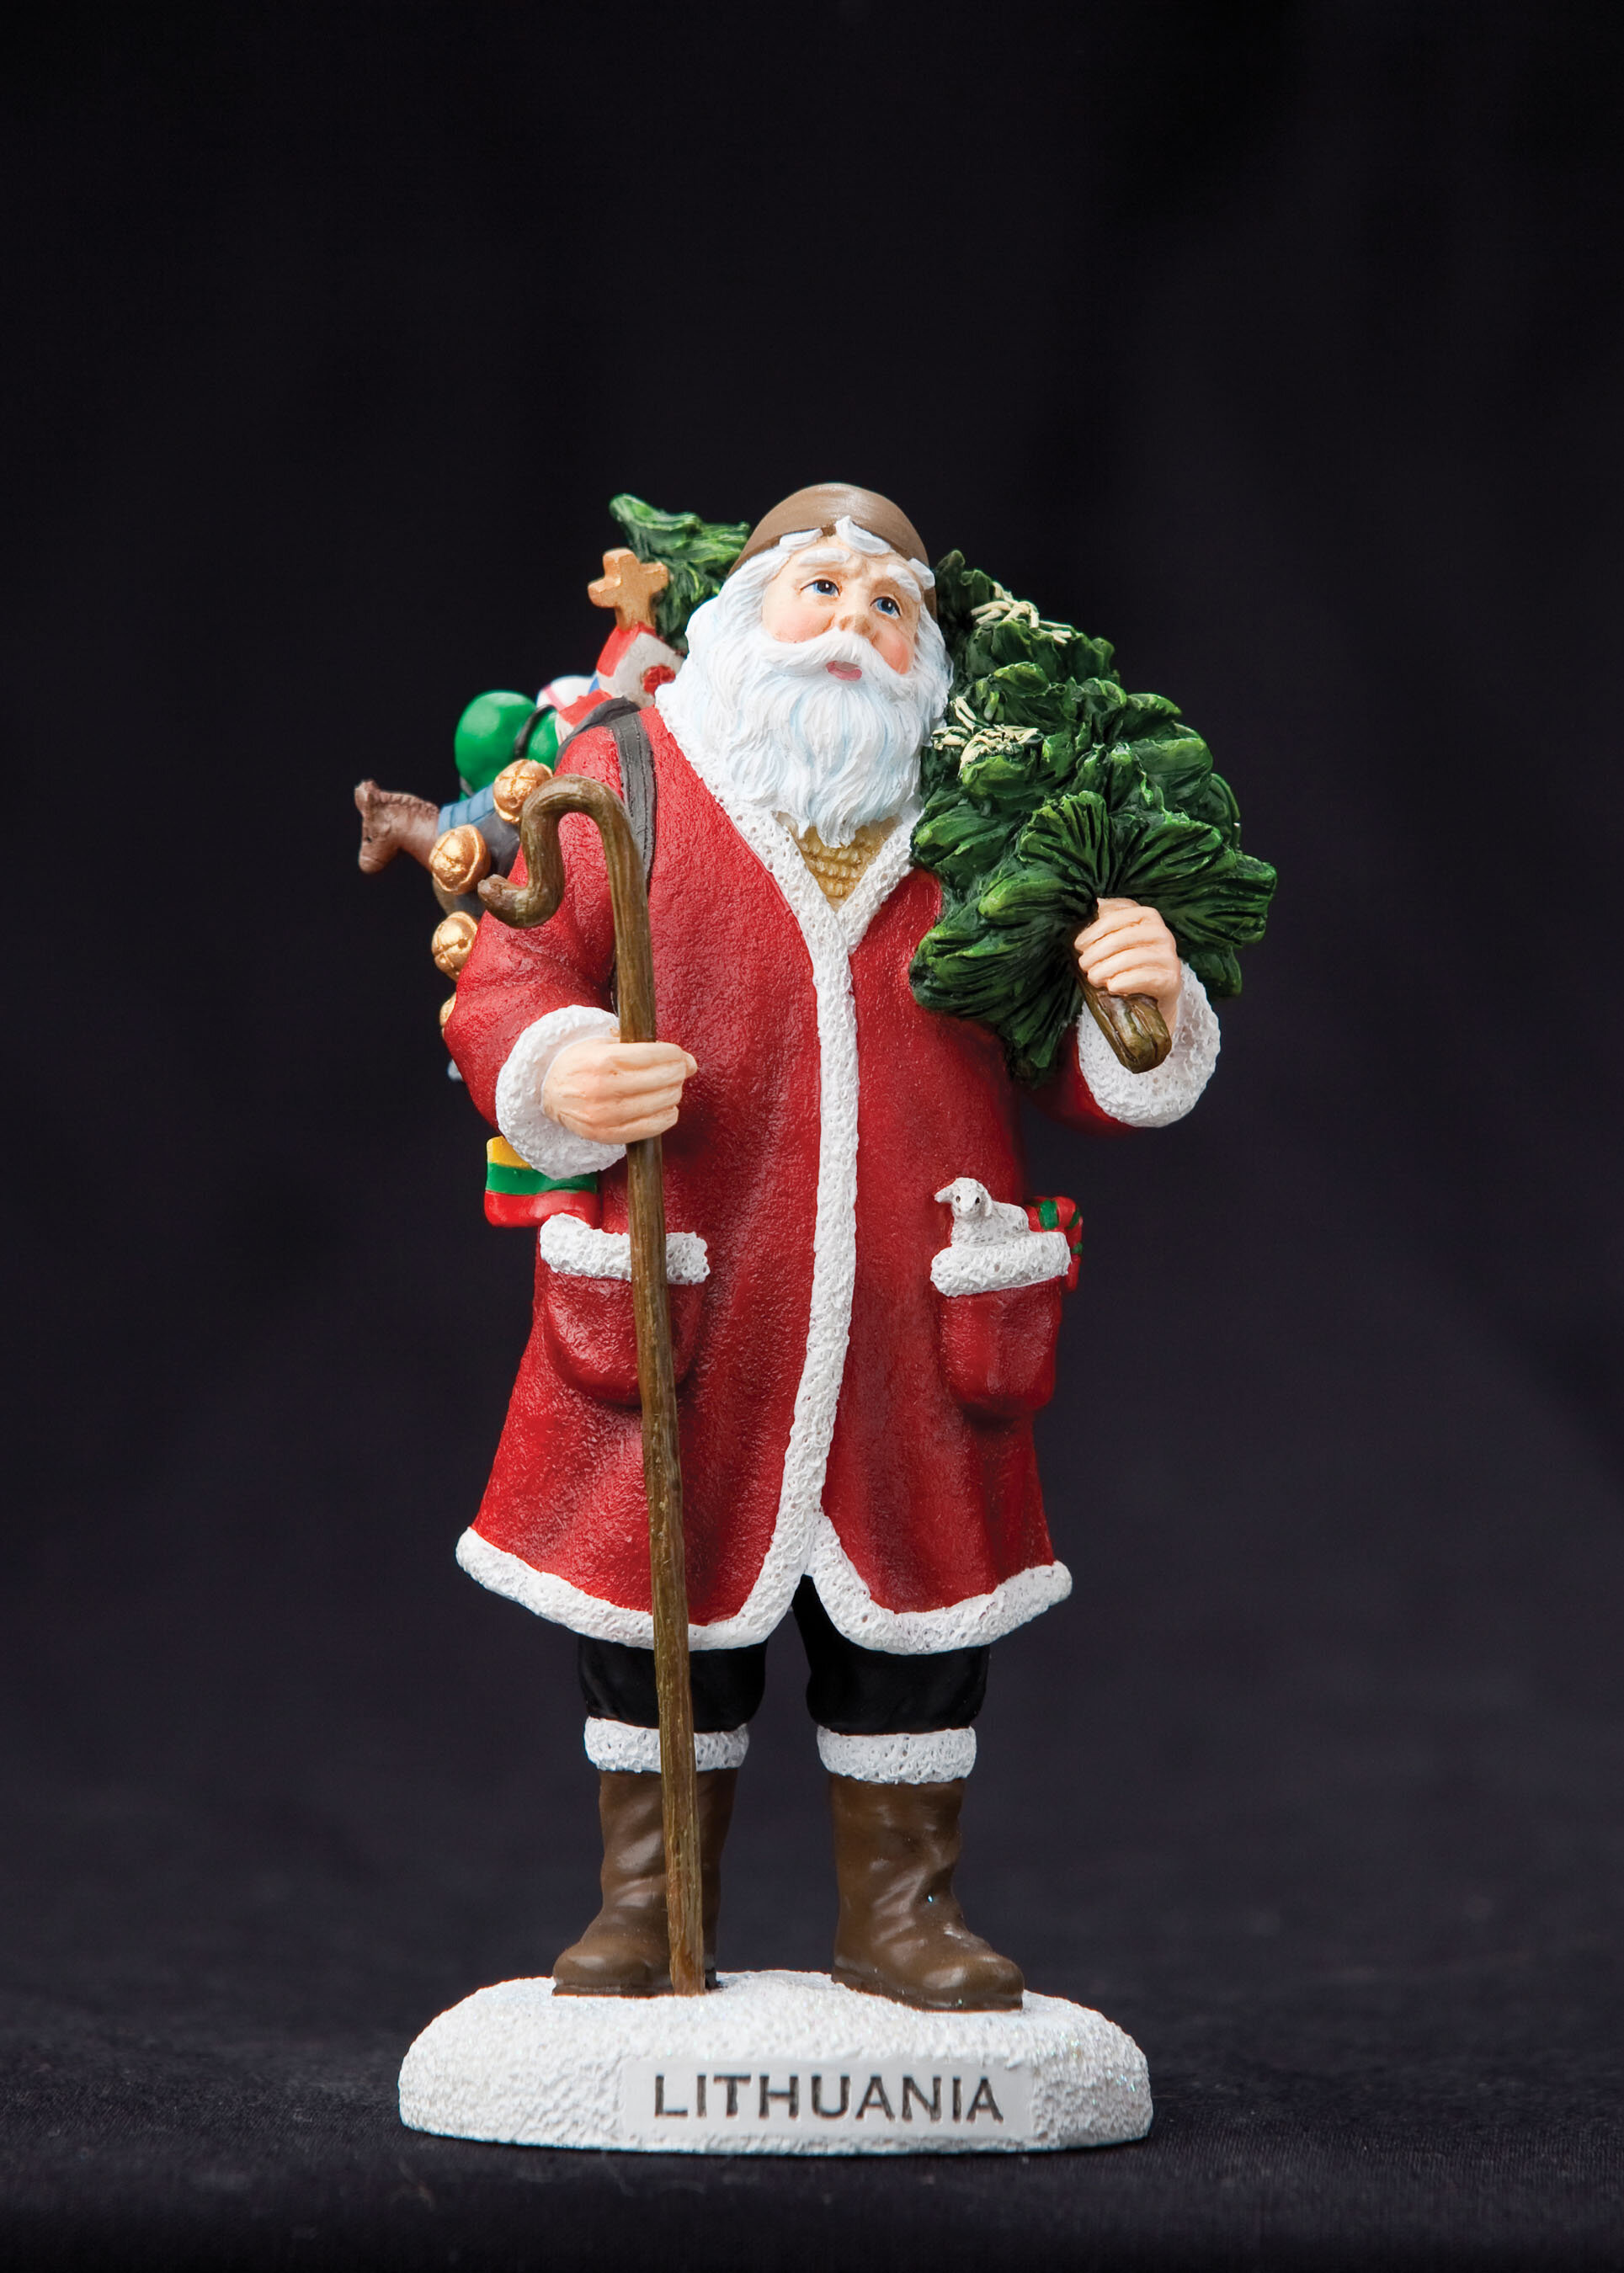 thumbnail santas life the decorative s product size happy models jolly santa hour roger jr decor